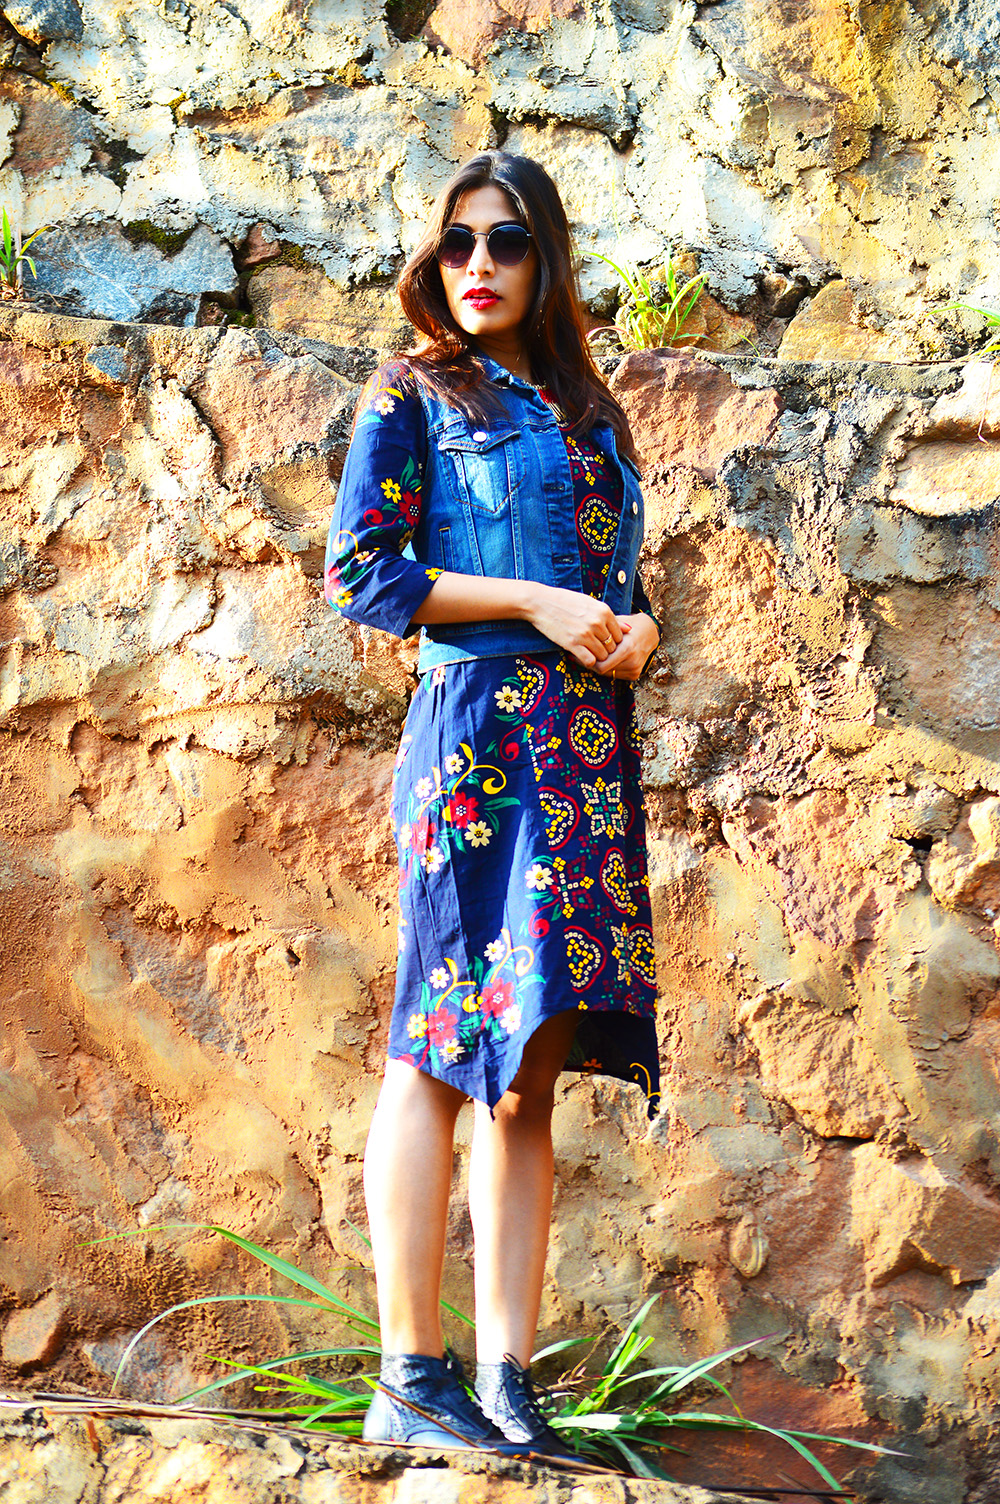 Fashion Style, Indian Fashion Blogger, Fashion Blog, Indo-western Street Style, Fashion Photography, Denim Vest, Retro Sunglasses, Indo Western Fashion, Outfit of the day, Sarmistha Goswami, Style Over Coffee-1